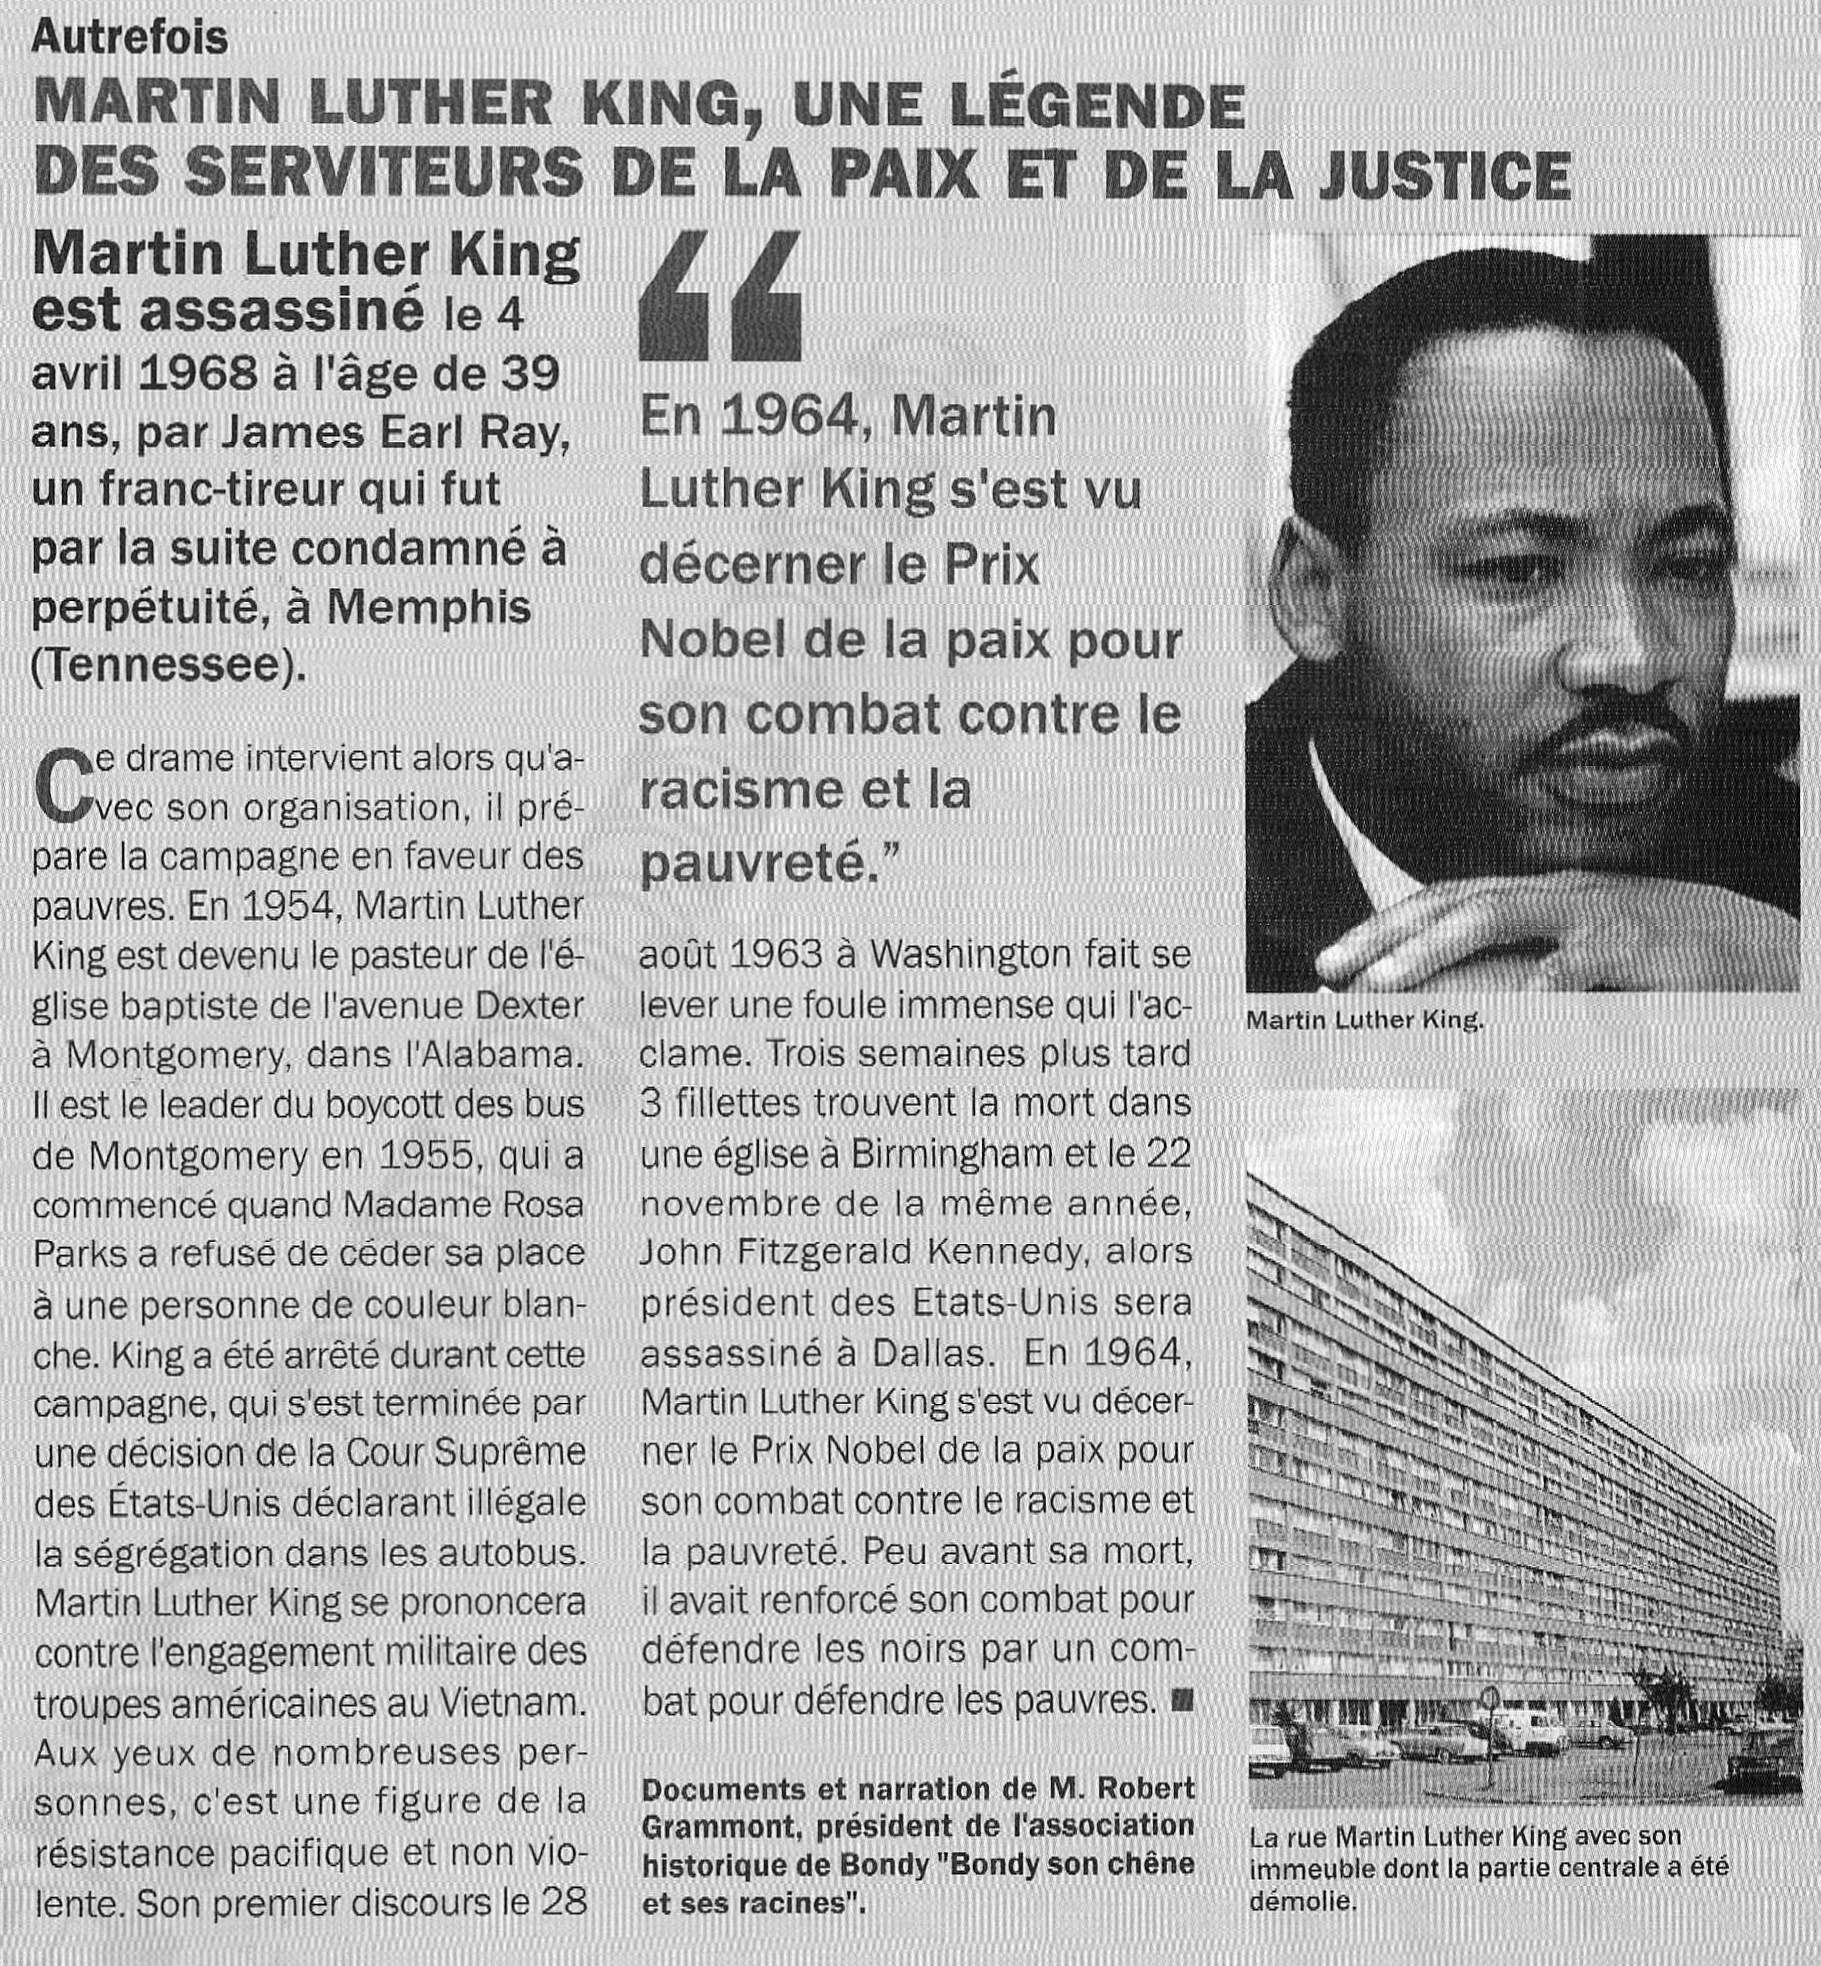 Rue Martin Luther King